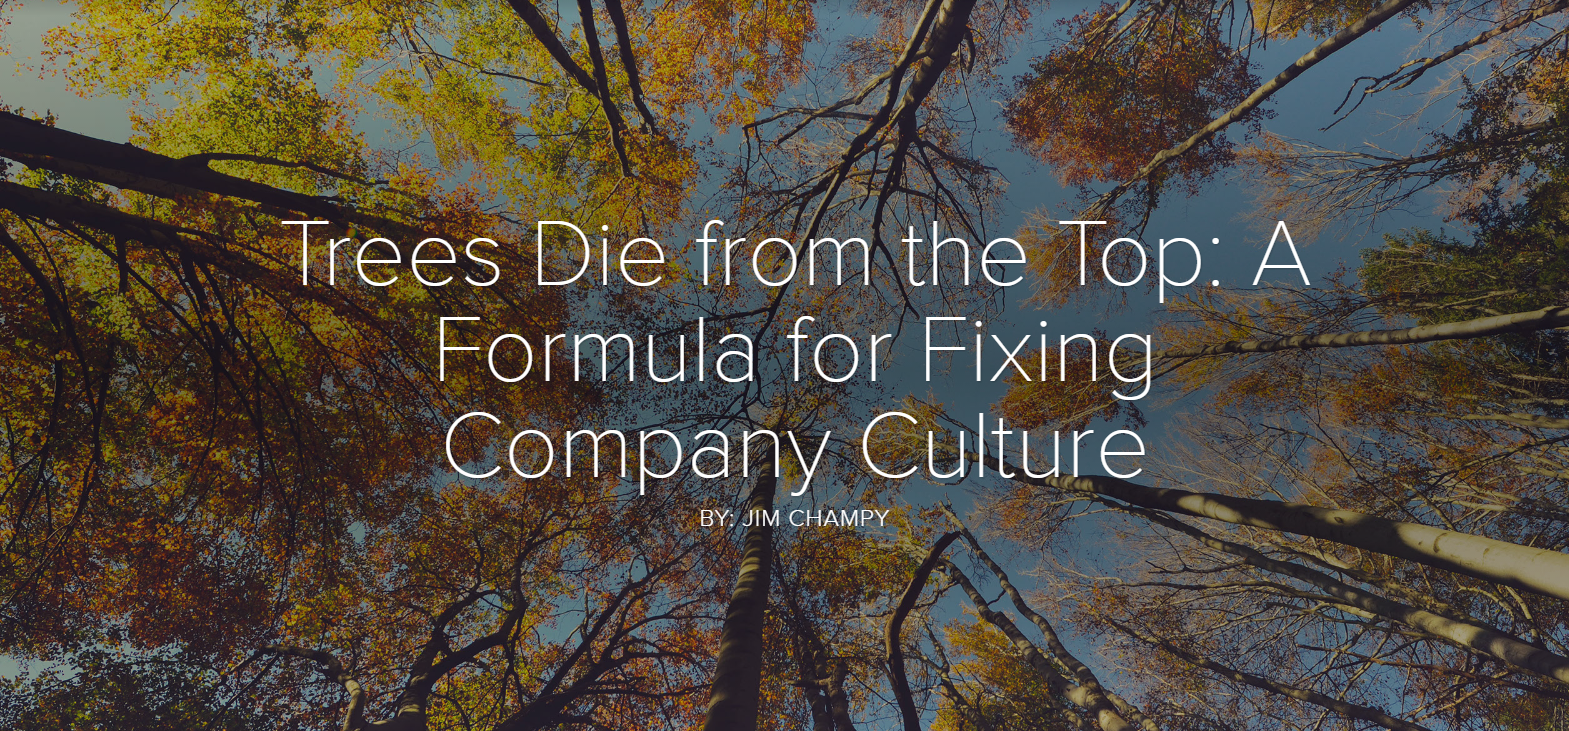 Trees Die from the Top: A Formula for Fixing Company Culture